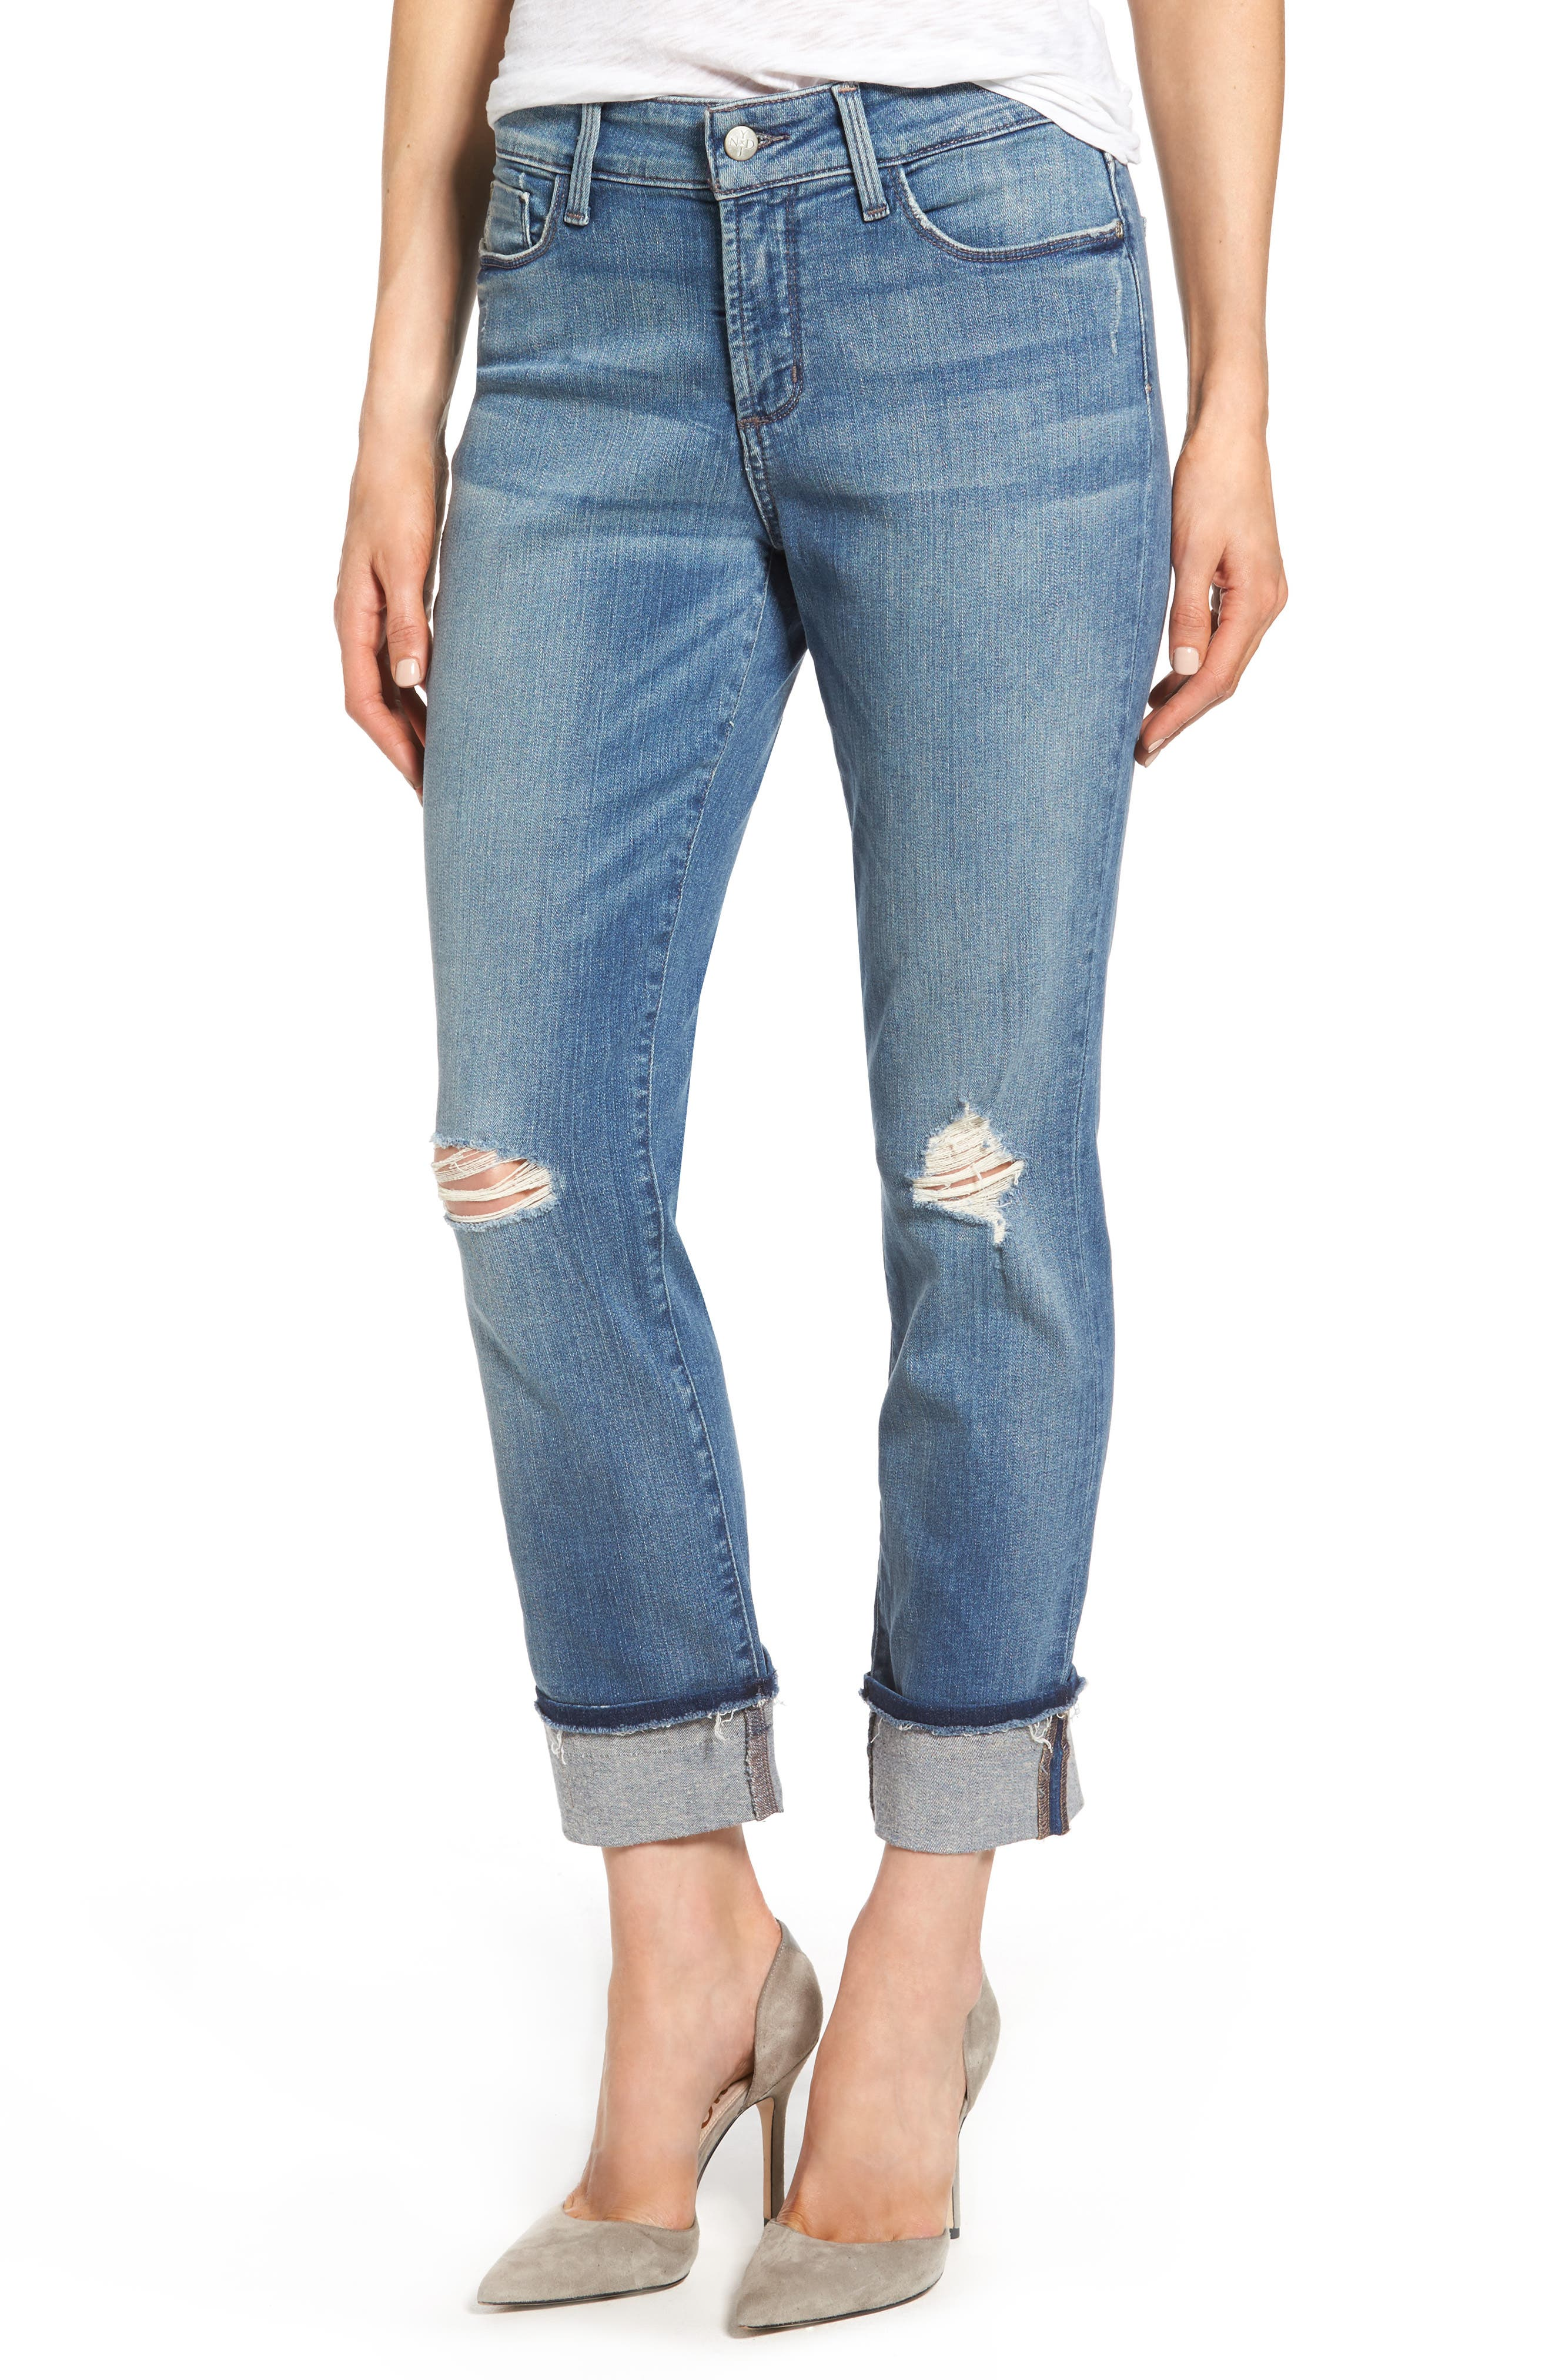 Alternate Image 1 Selected - NYDJ Jessica Distressed Fray Cuff Boyfriend Jeans (Paloma Rip)